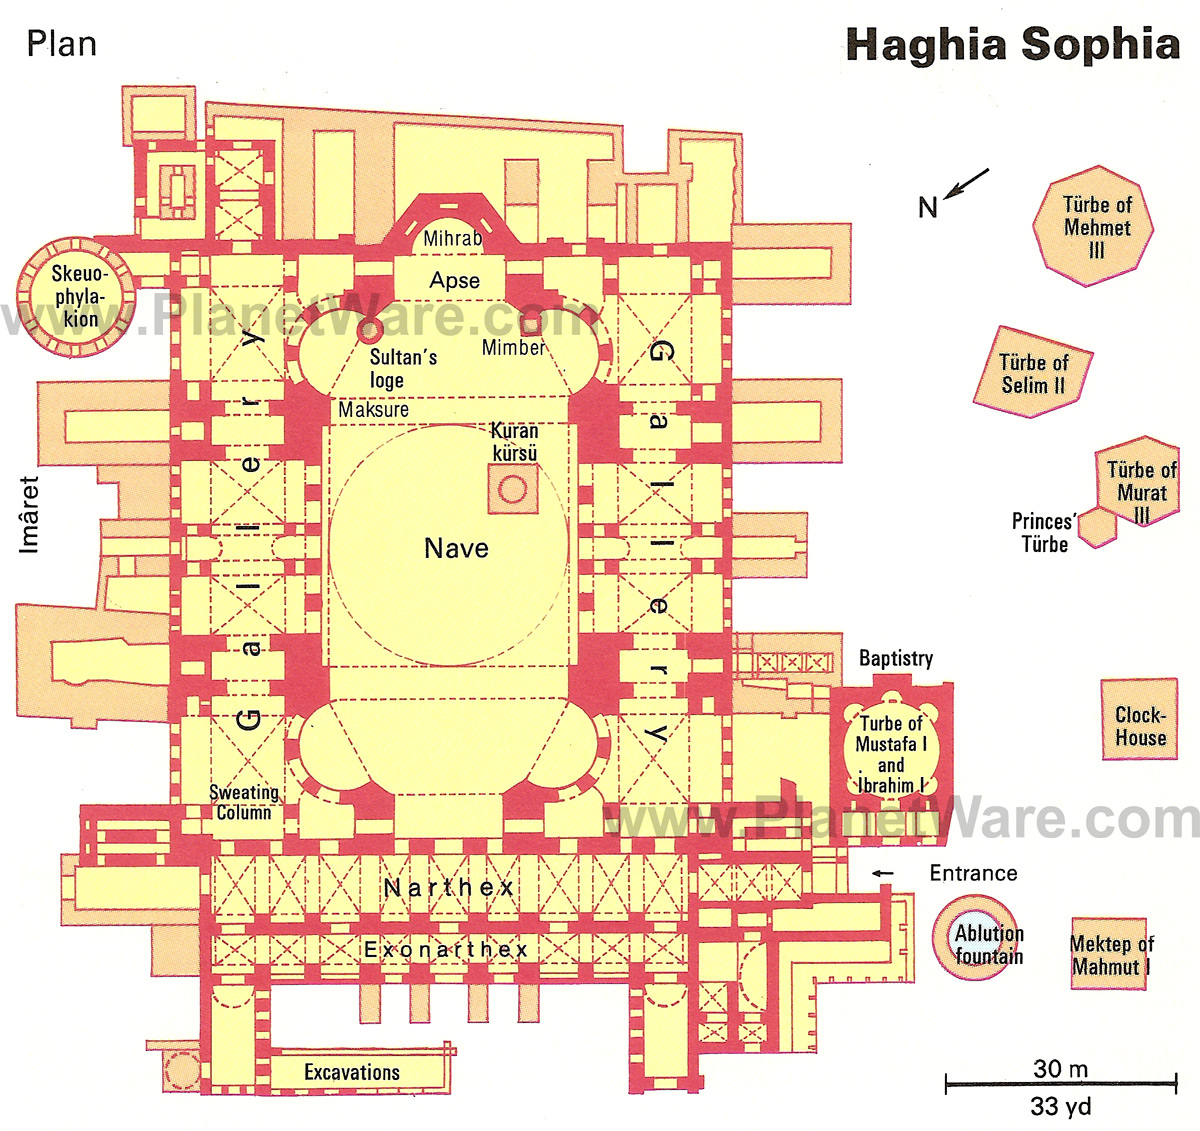 HagiaSophia Ground Floor